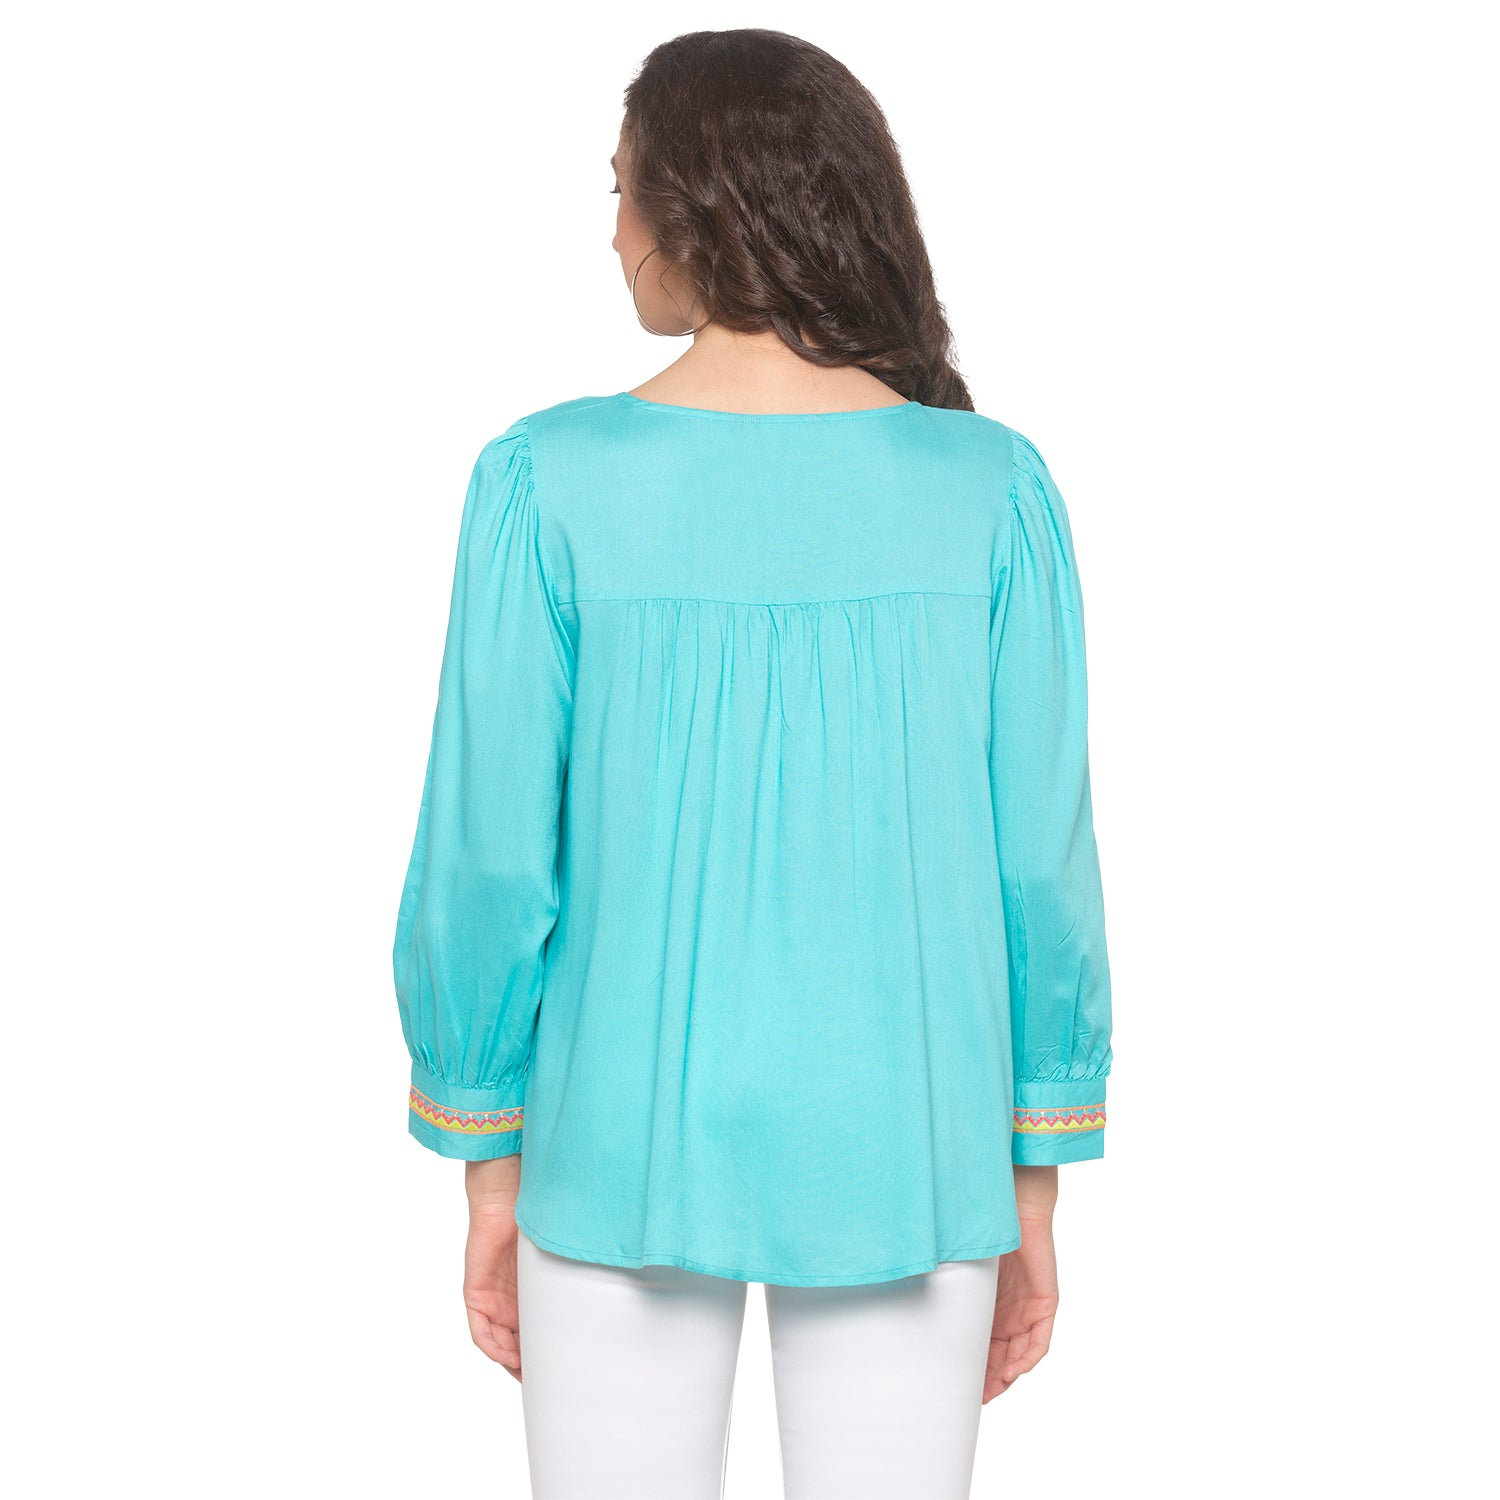 Turquoise Blue Embroidered Top-3